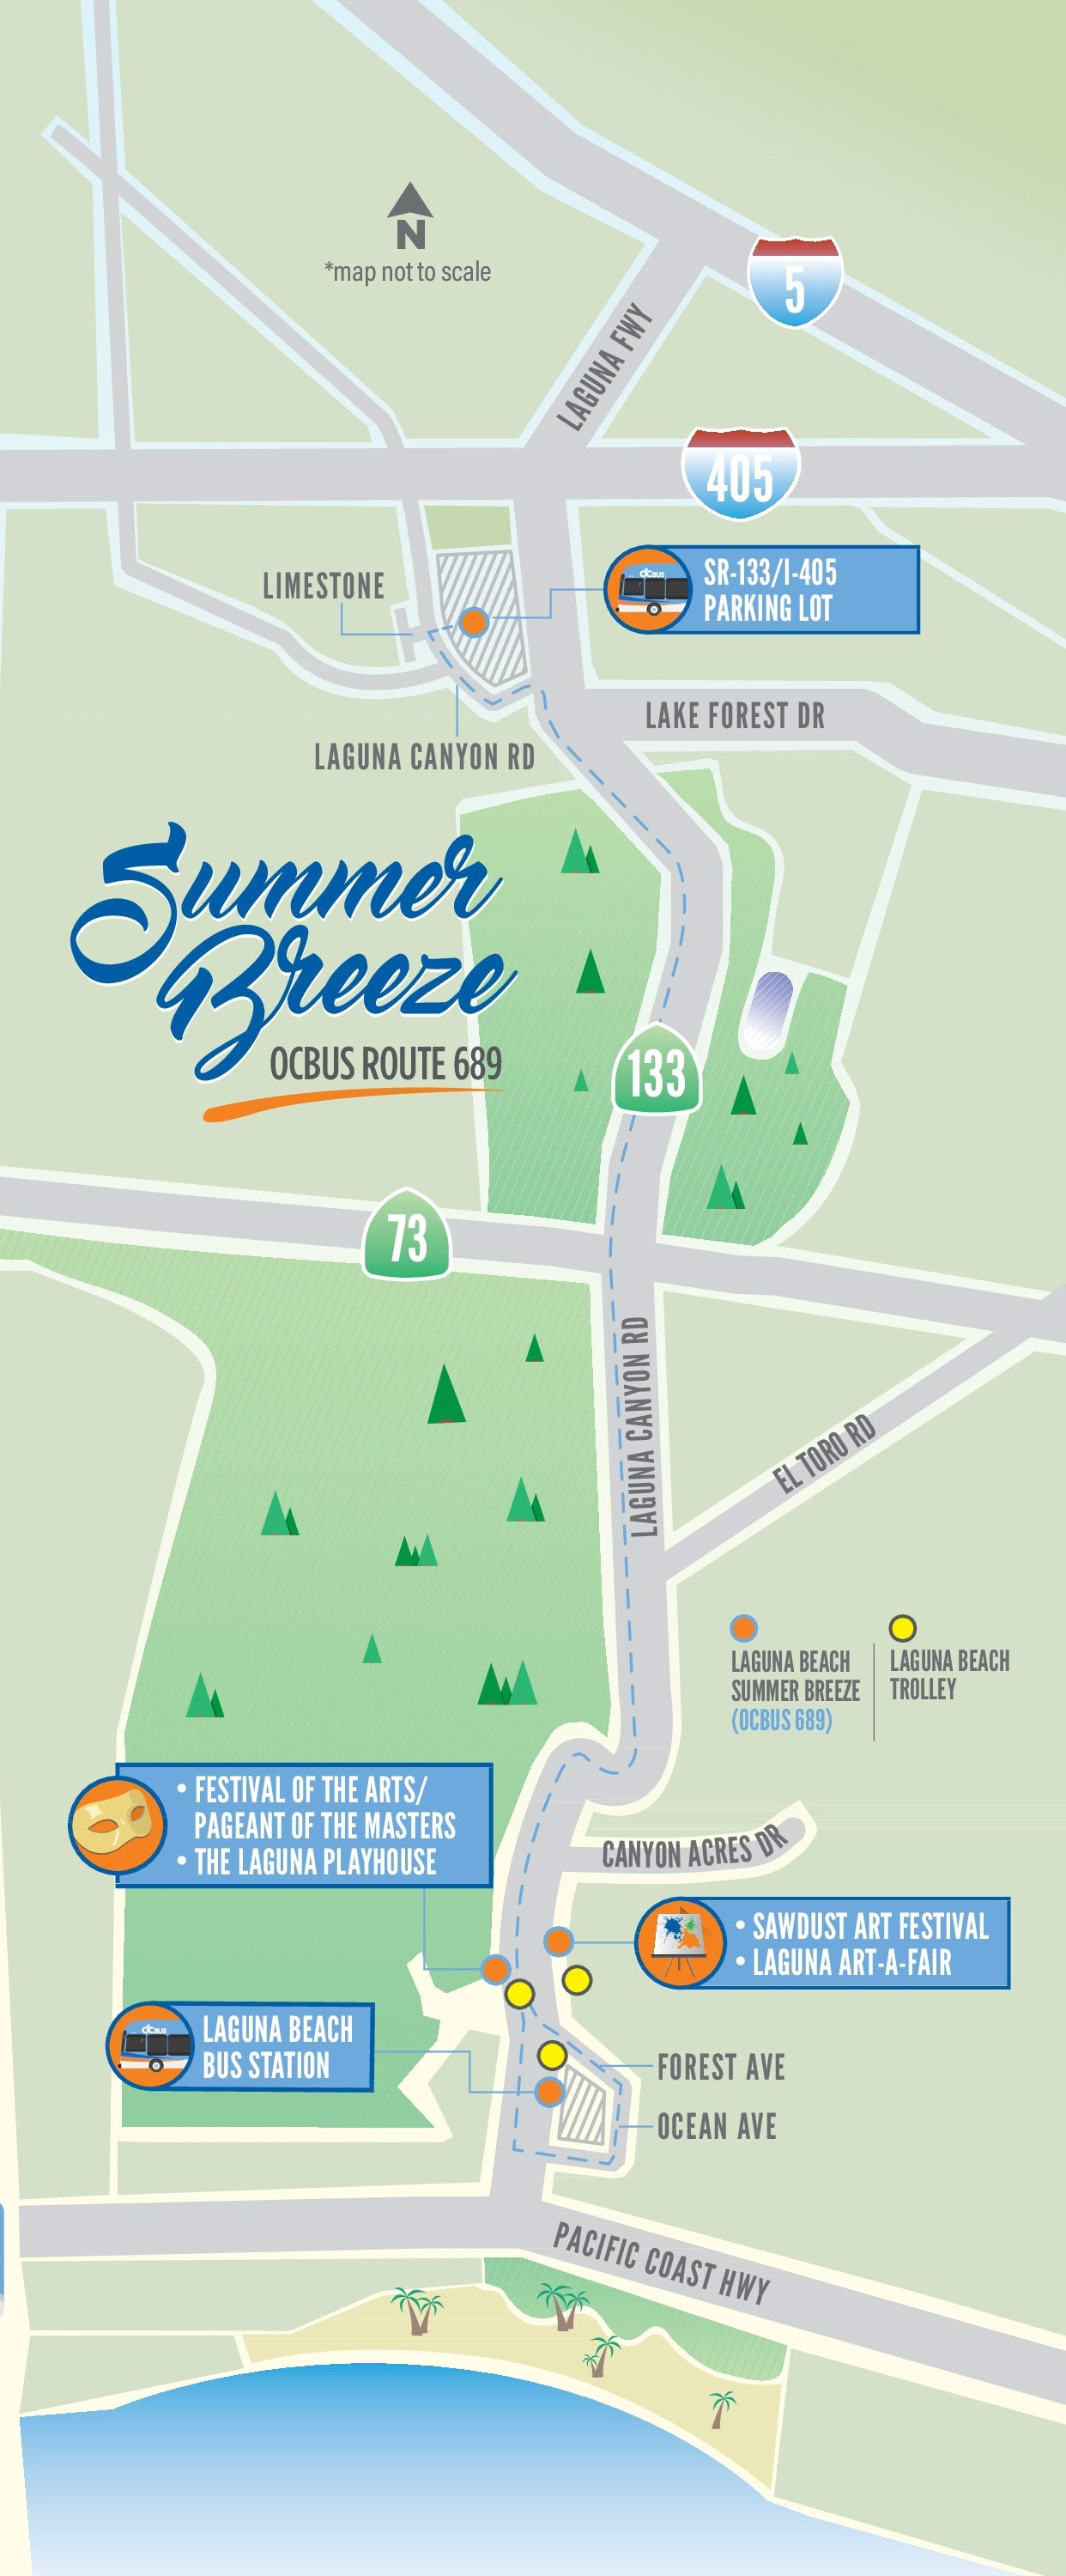 Summer Breeze Bus route